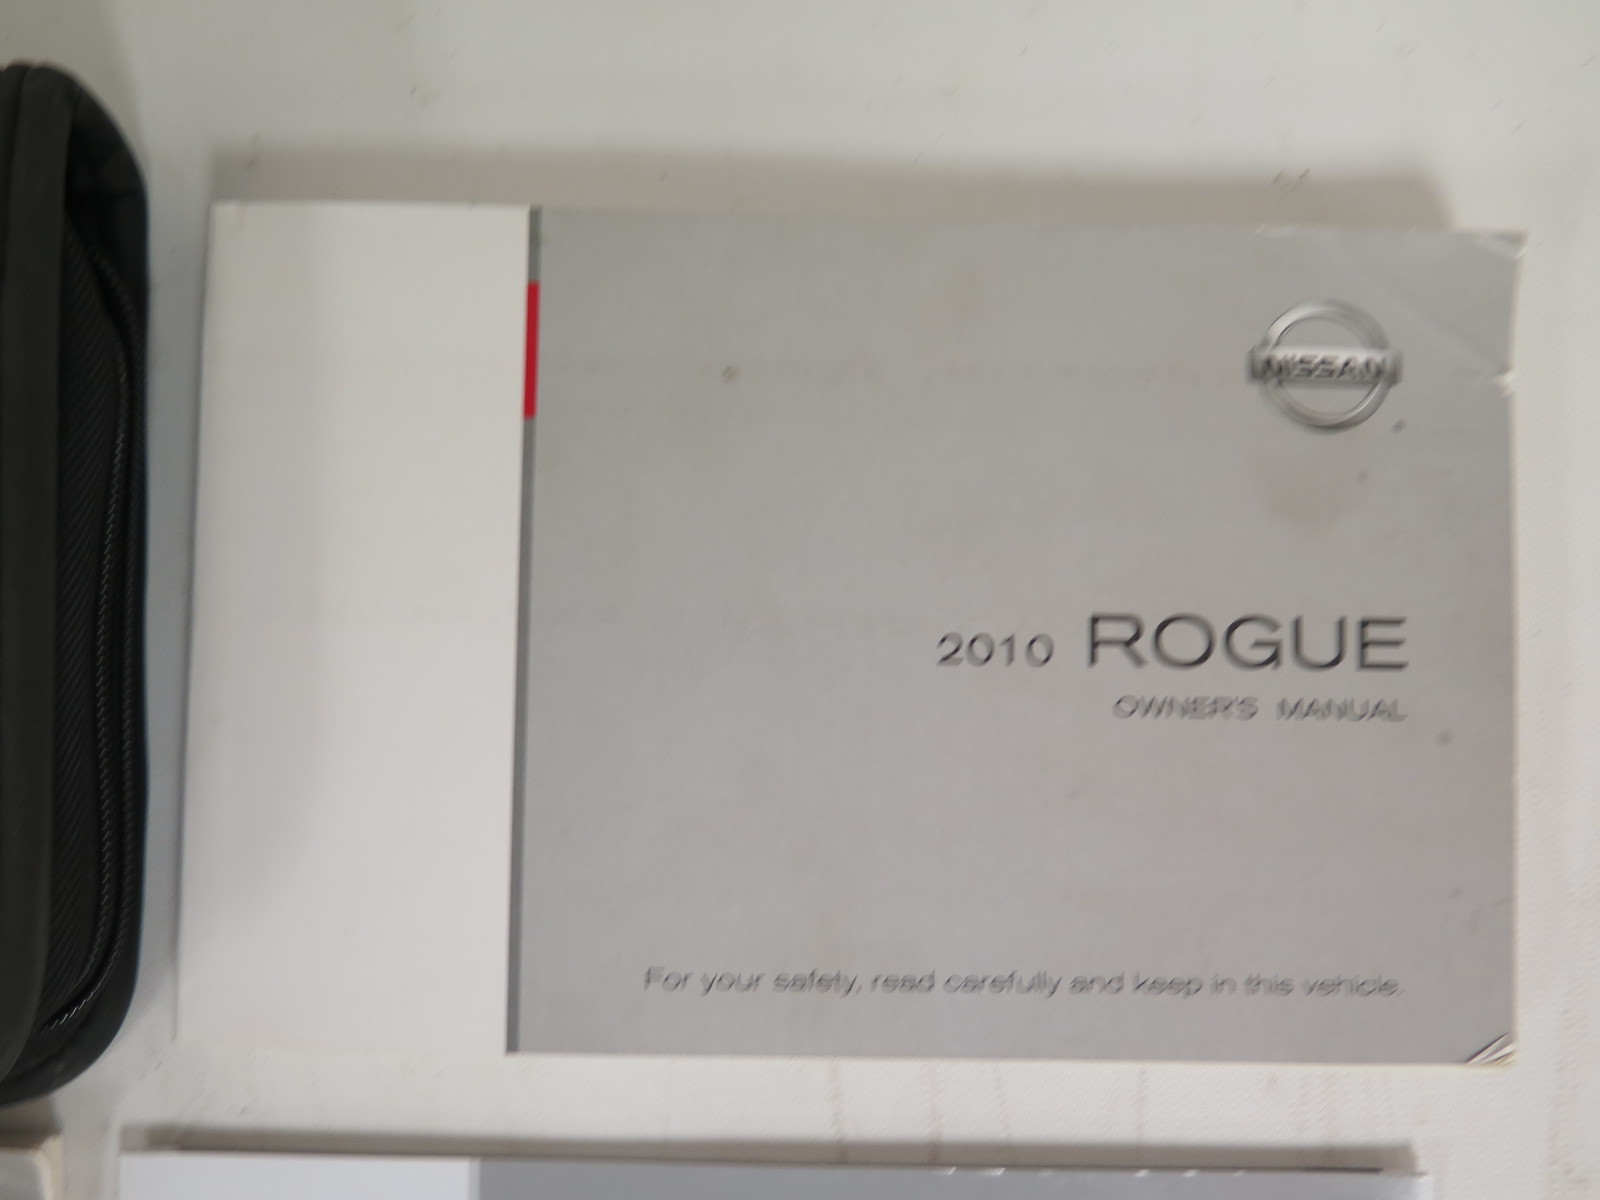 2010 nissan rogue owners manual guide book